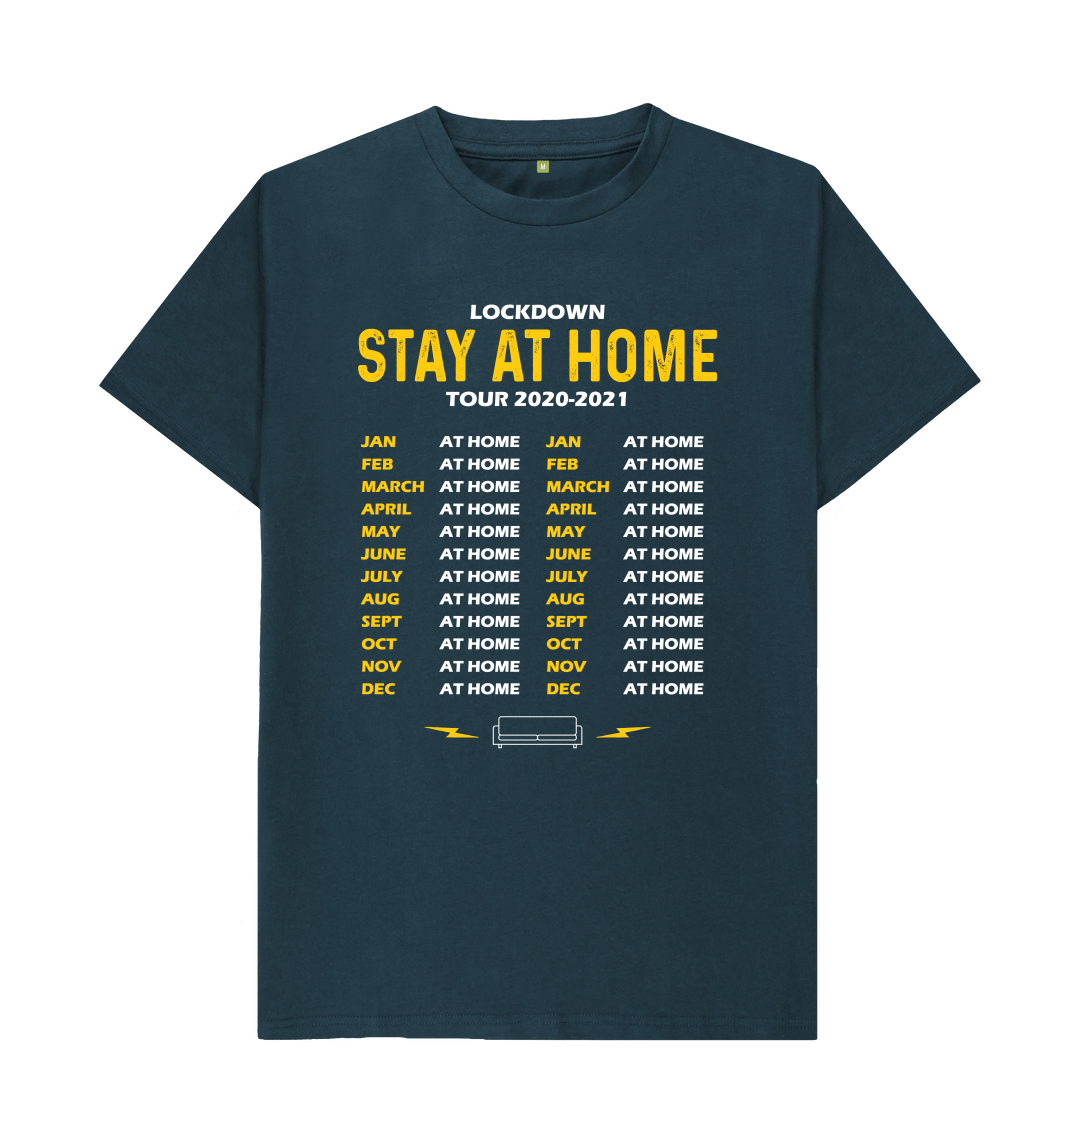 Denim Blue Stay At Home Tour Dates T-shirt